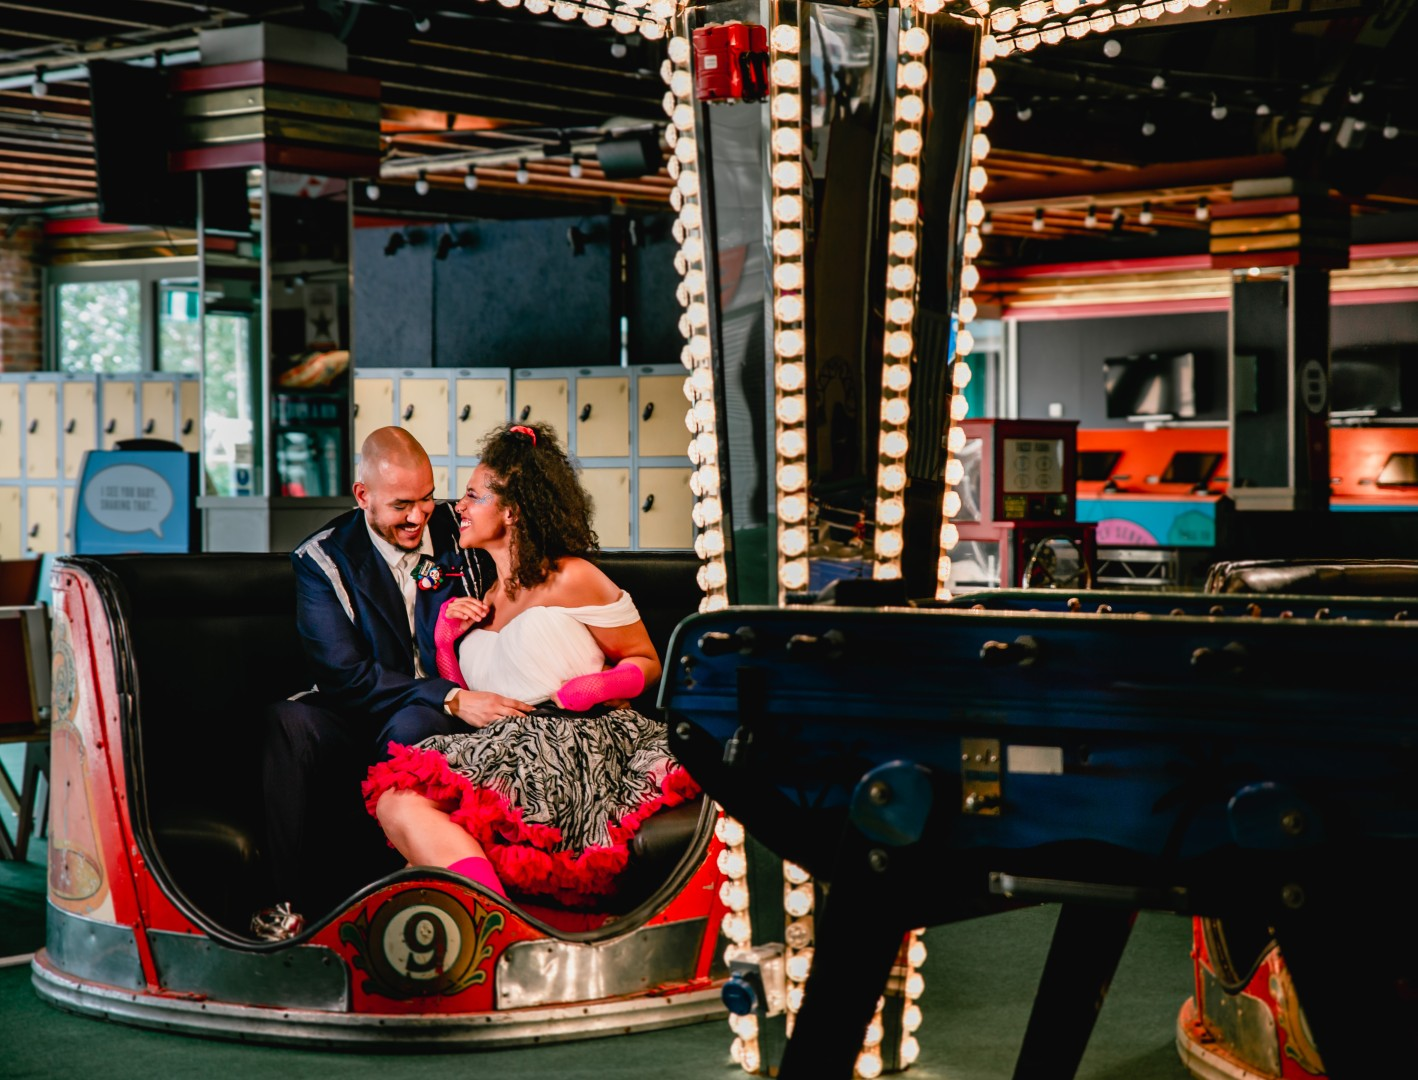 80s themed wedding - funfair wedding - quirky wedding - fun wedding